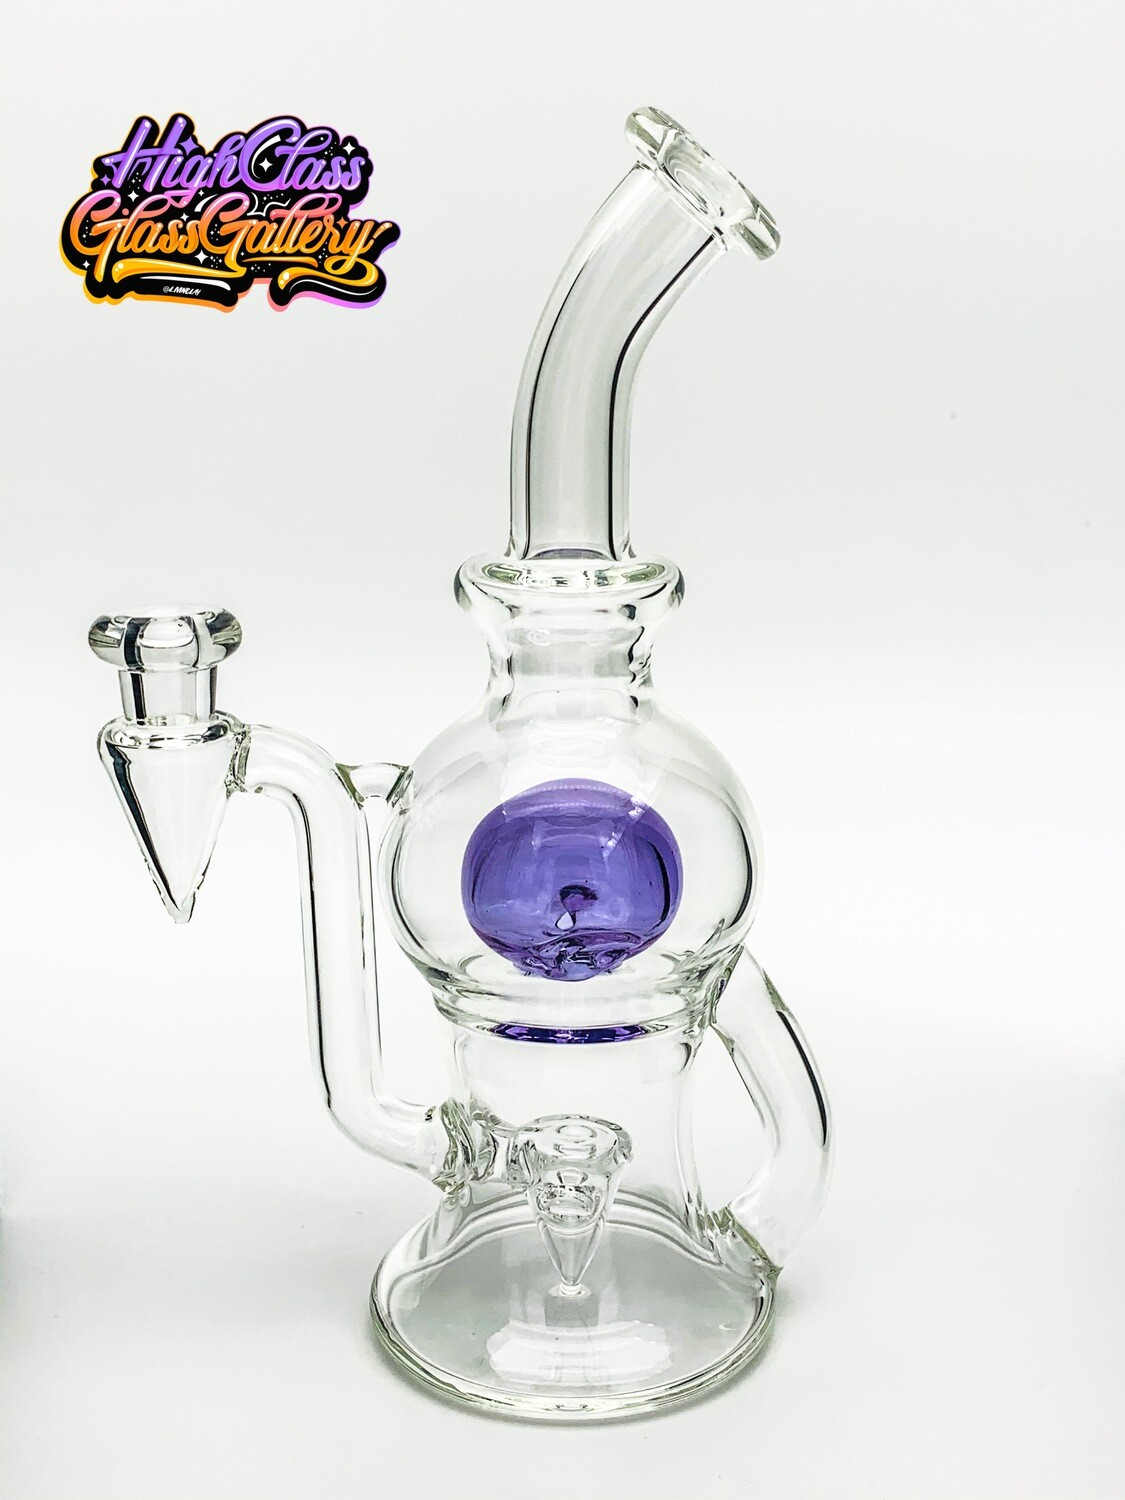 Tubesock Glass Voodoo Brain Bub